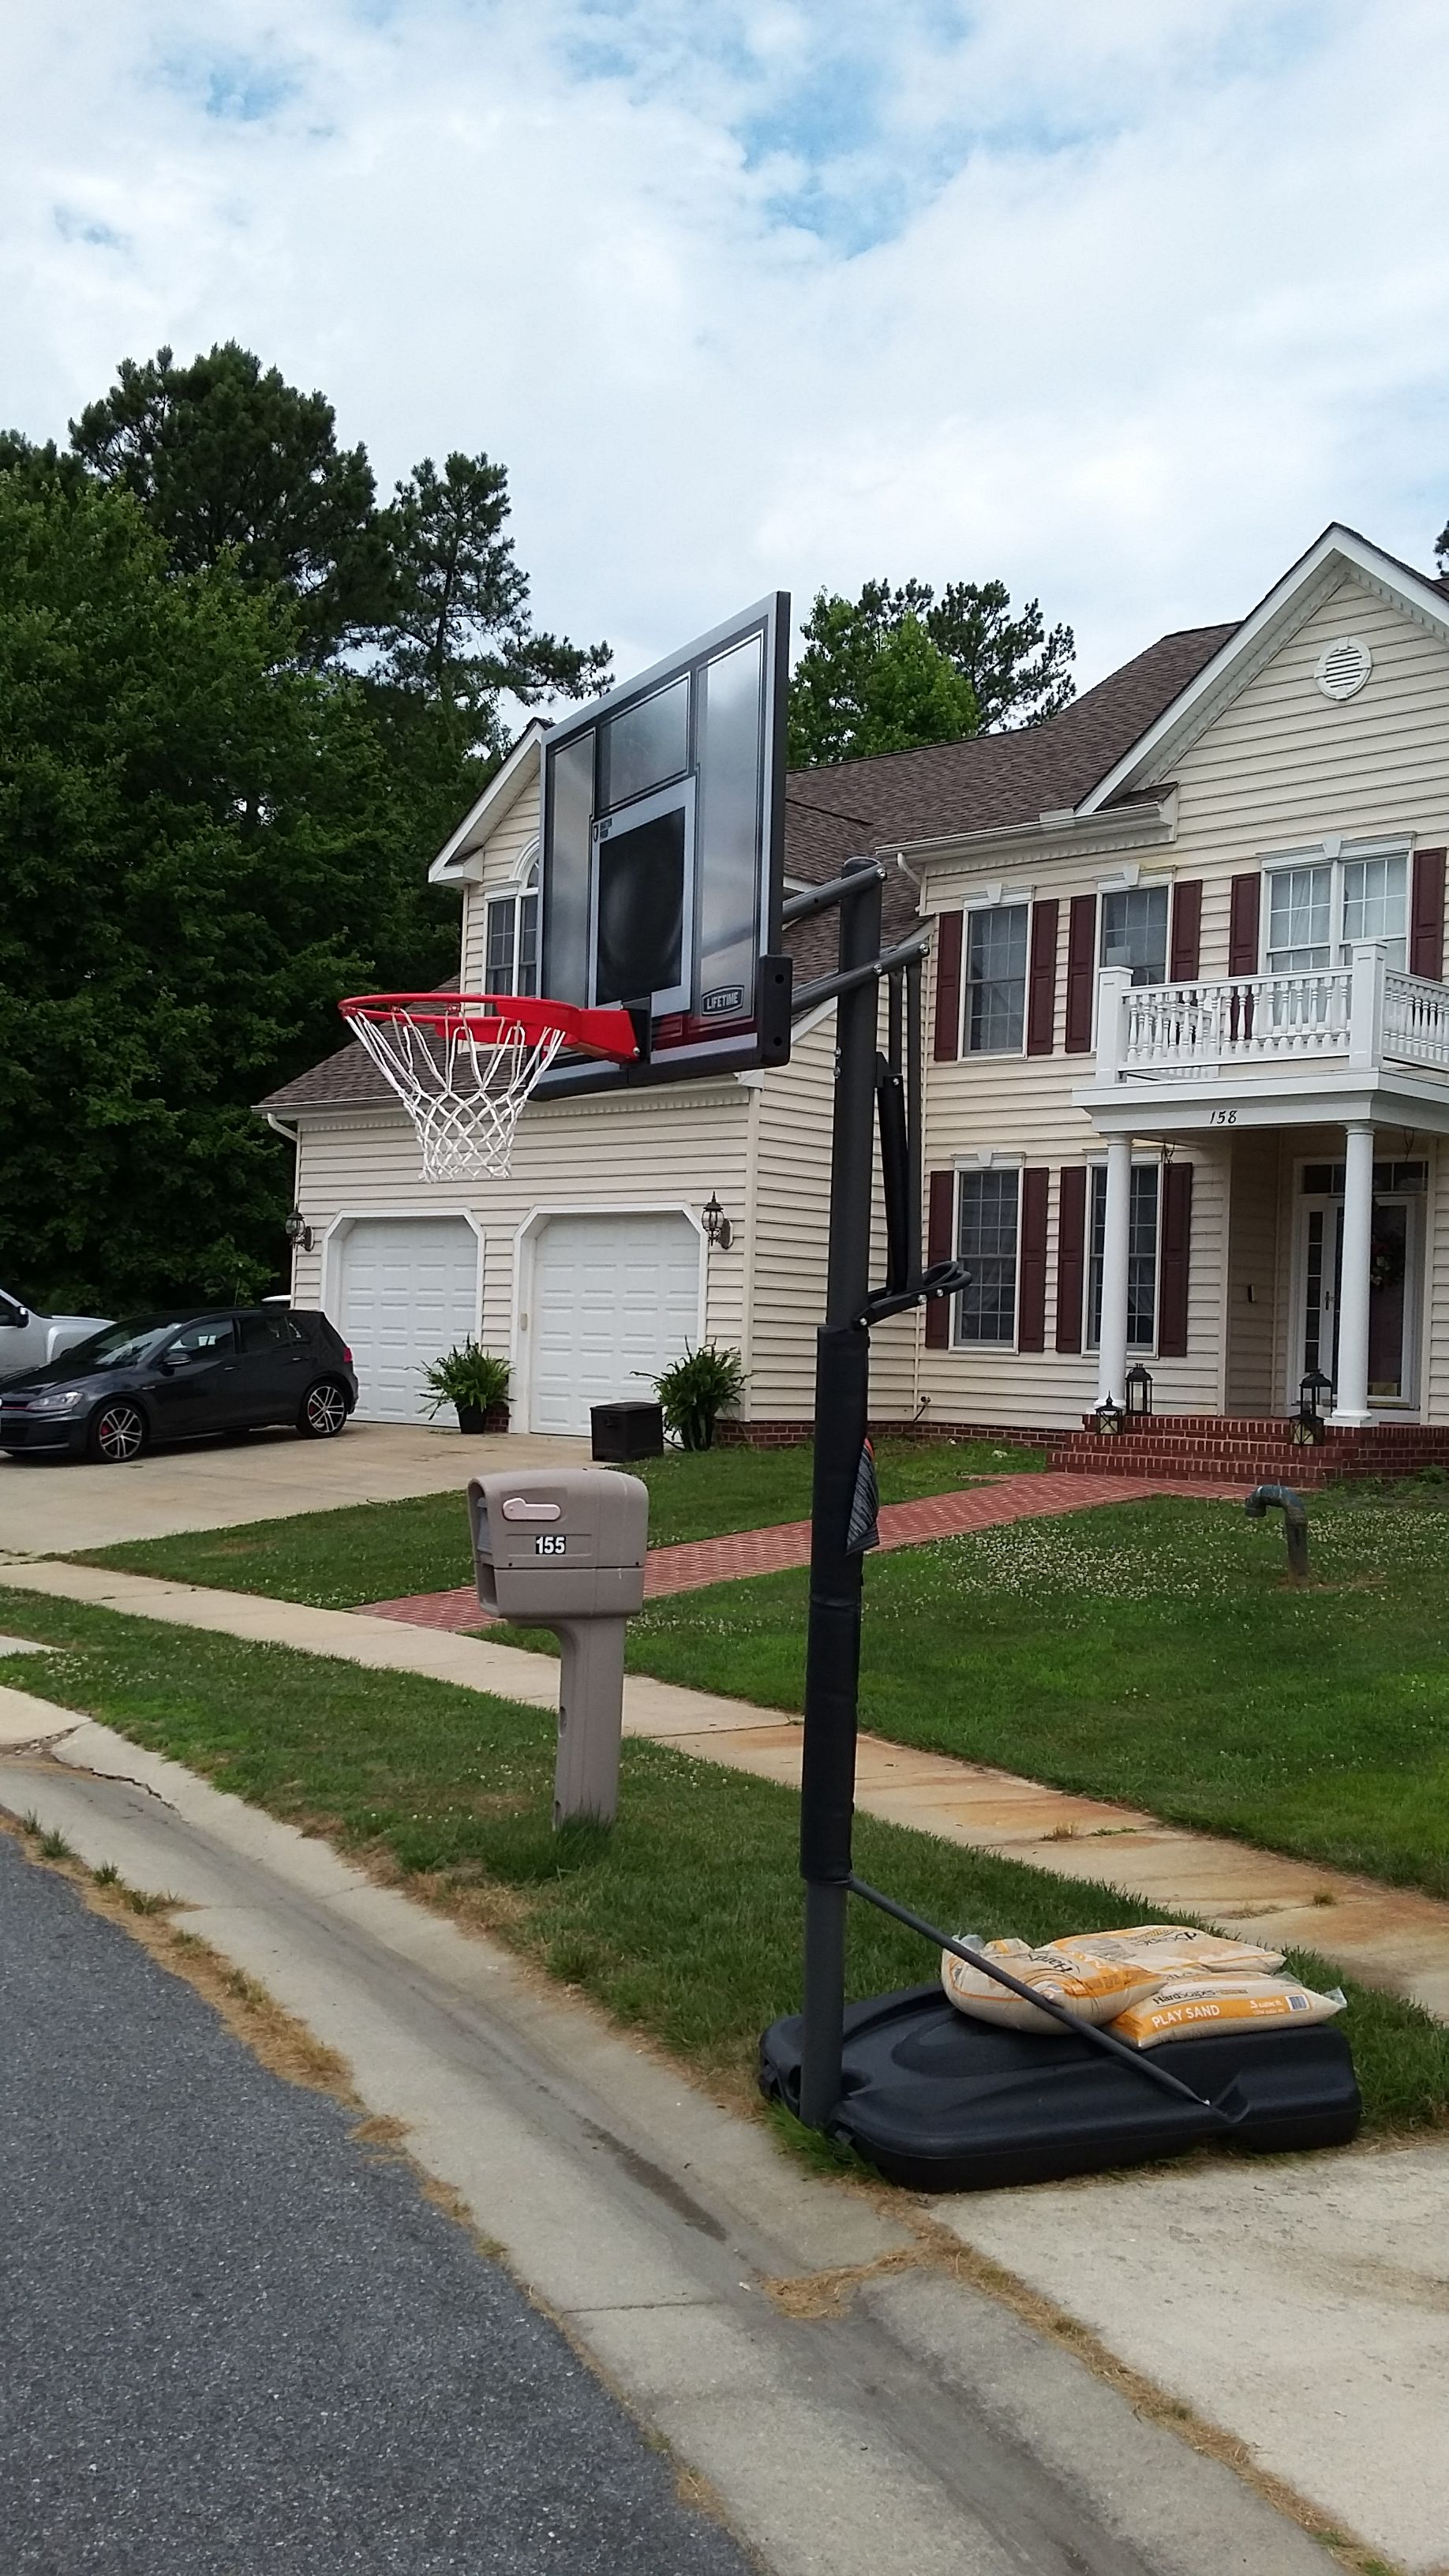 Basketball Hoop Assemblers Call 240 764 6143 In Woodbridge By Furniture Assembly Experts In 2021